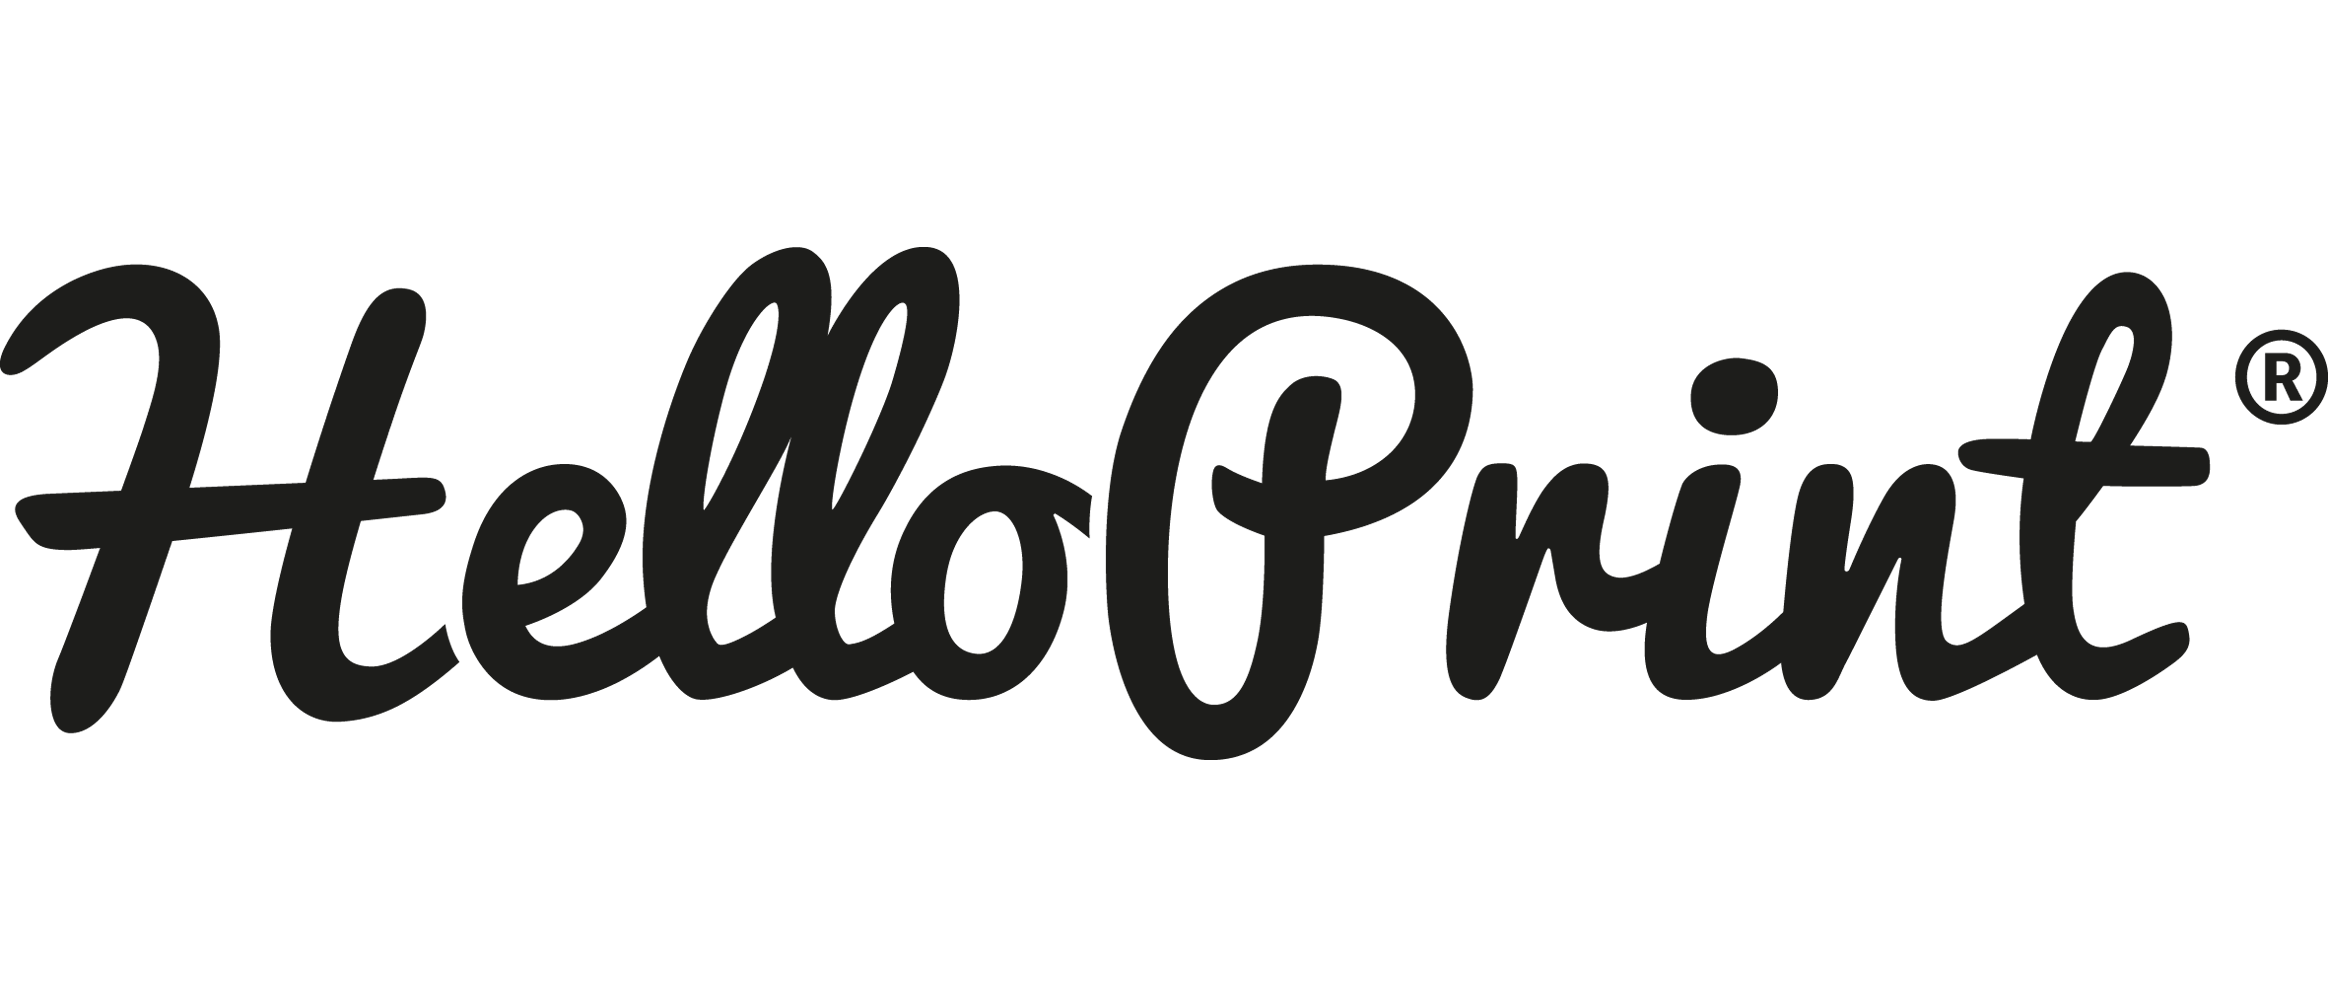 Helloprint.co.uk